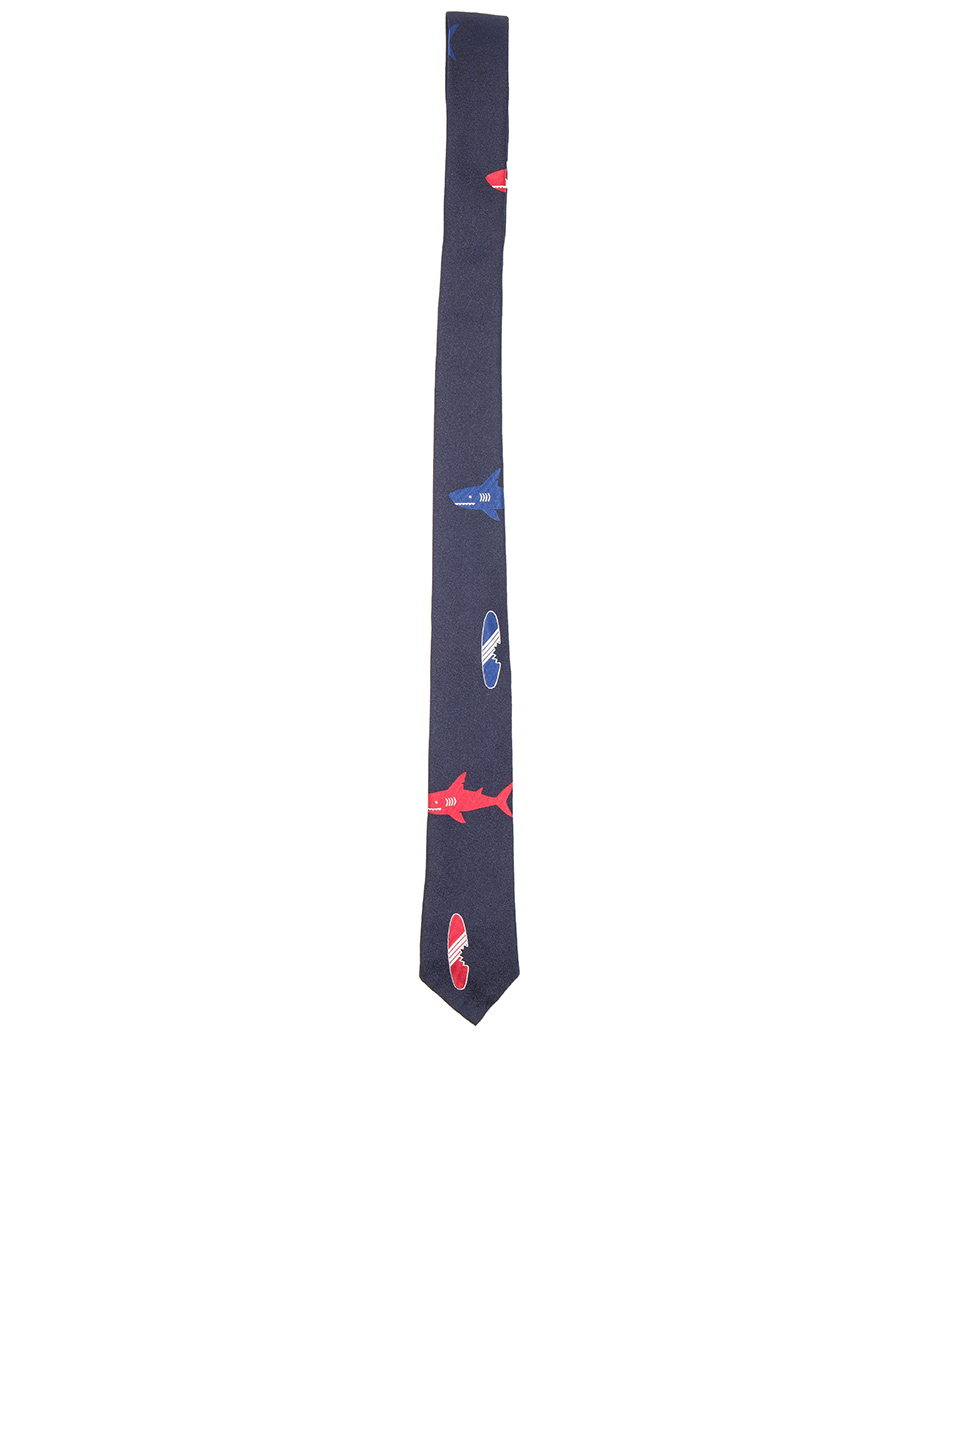 Thom Browne Shark & Surfboard Silk Tie in Blue